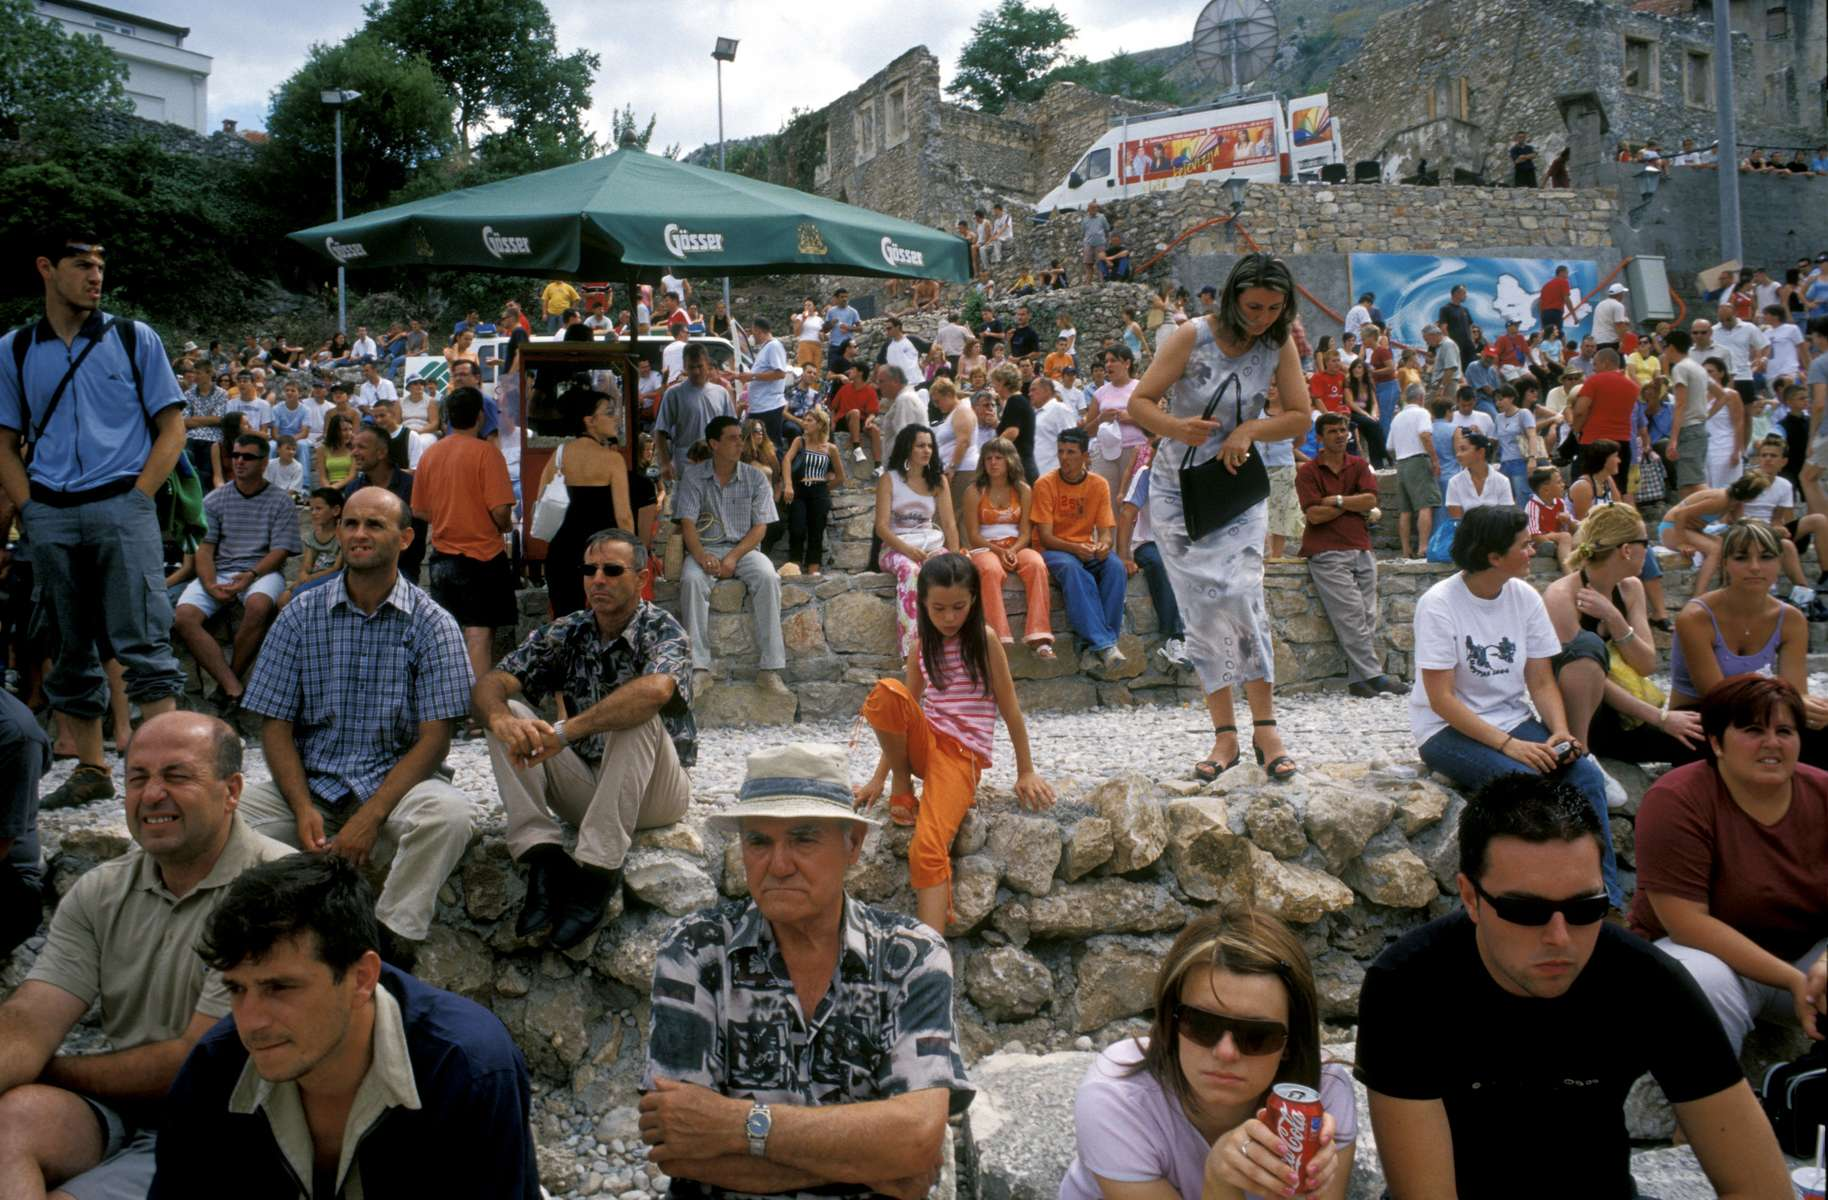 Crowds line the banks of the Neretva River, waiting for what locals say is the 448th annual jumping and diving competition. Local youth have proved their athletic prowess on the more than eighty-foot-high bridge for centuries. Even during the 1992-95 war, when the original bridge was destroyed, they continued to jump from the side of where the old bridge once stood.